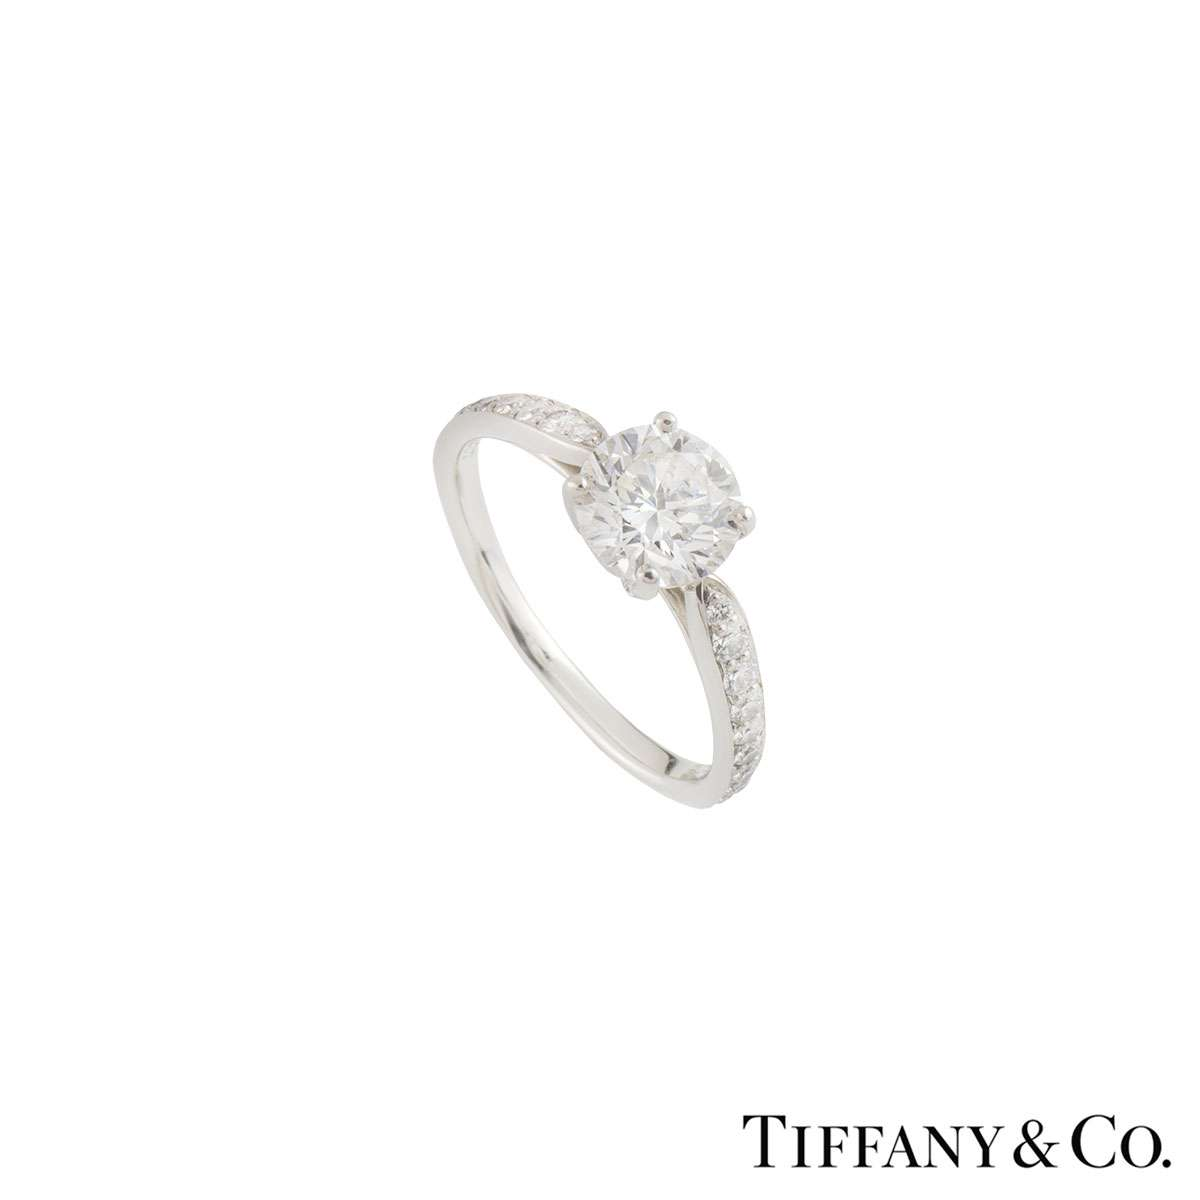 Tiffany & Co. Diamond Platinum Harmony Ring 1.05ct G/VS2 XXX